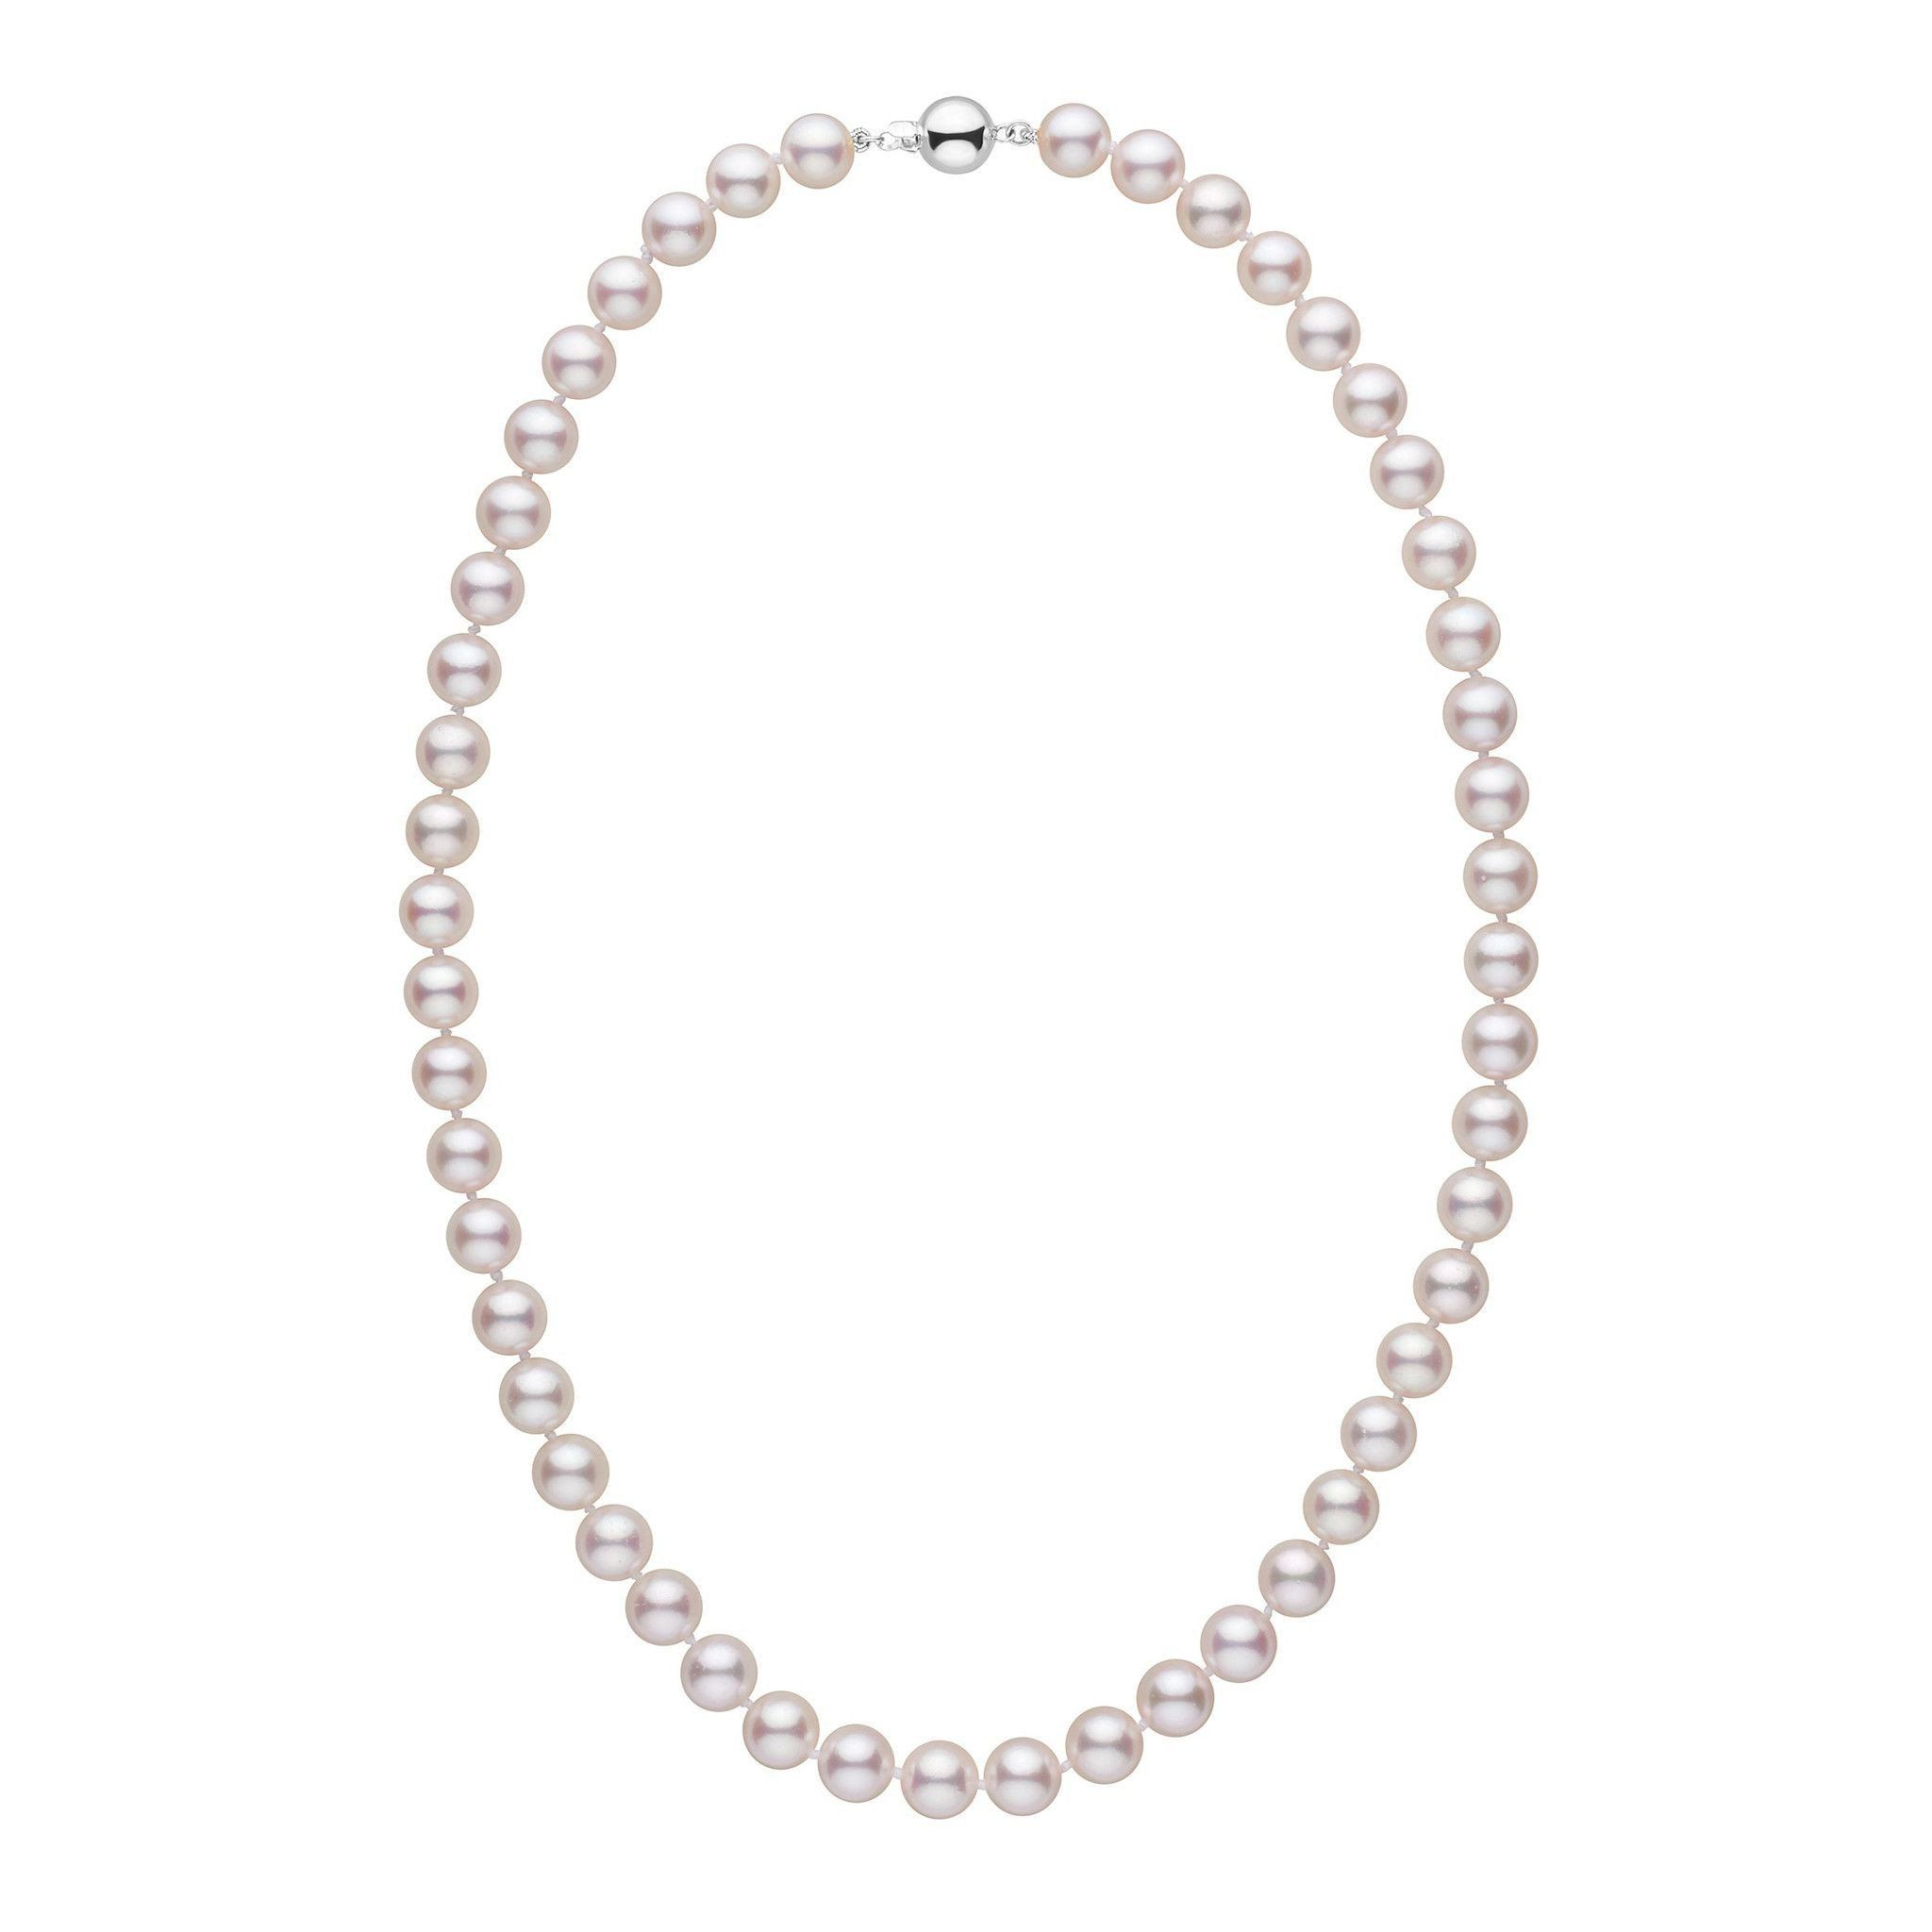 8.0-8.5 mm 18 inch AA+ White Akoya Pearl Necklace